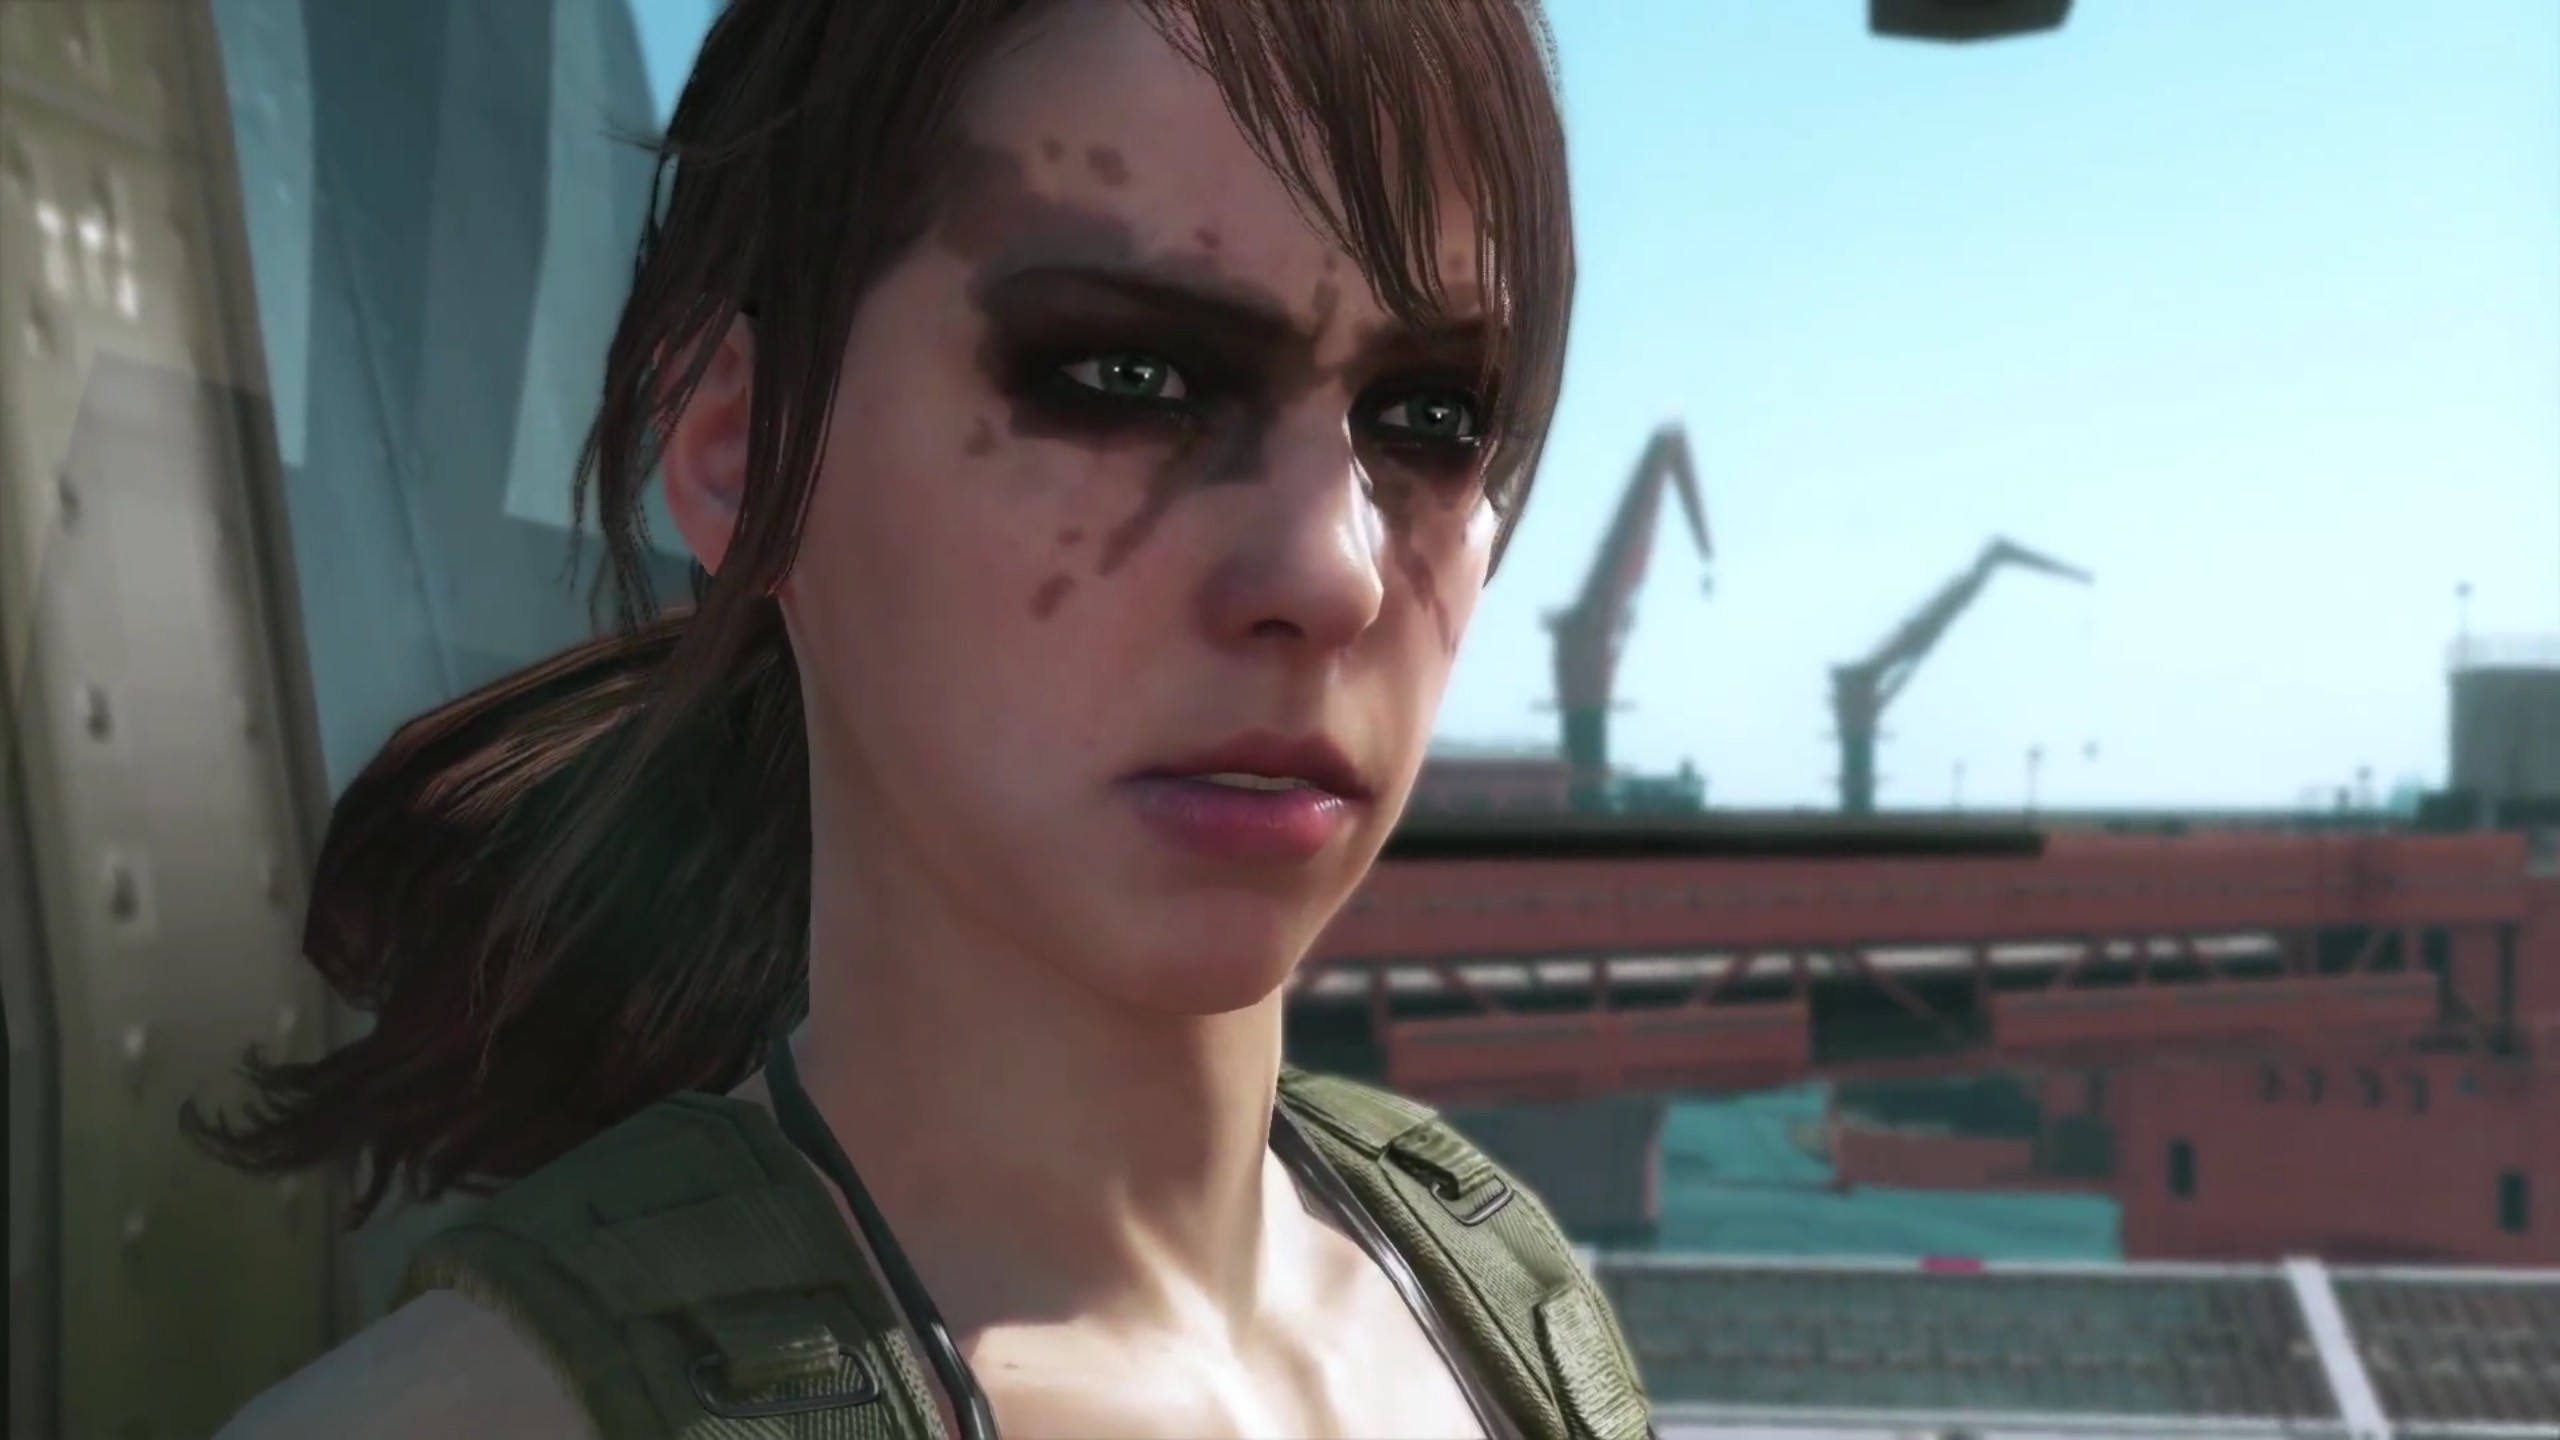 Res: 2560x1440, Metal Gear Solid 5 E3 Trailer - 07